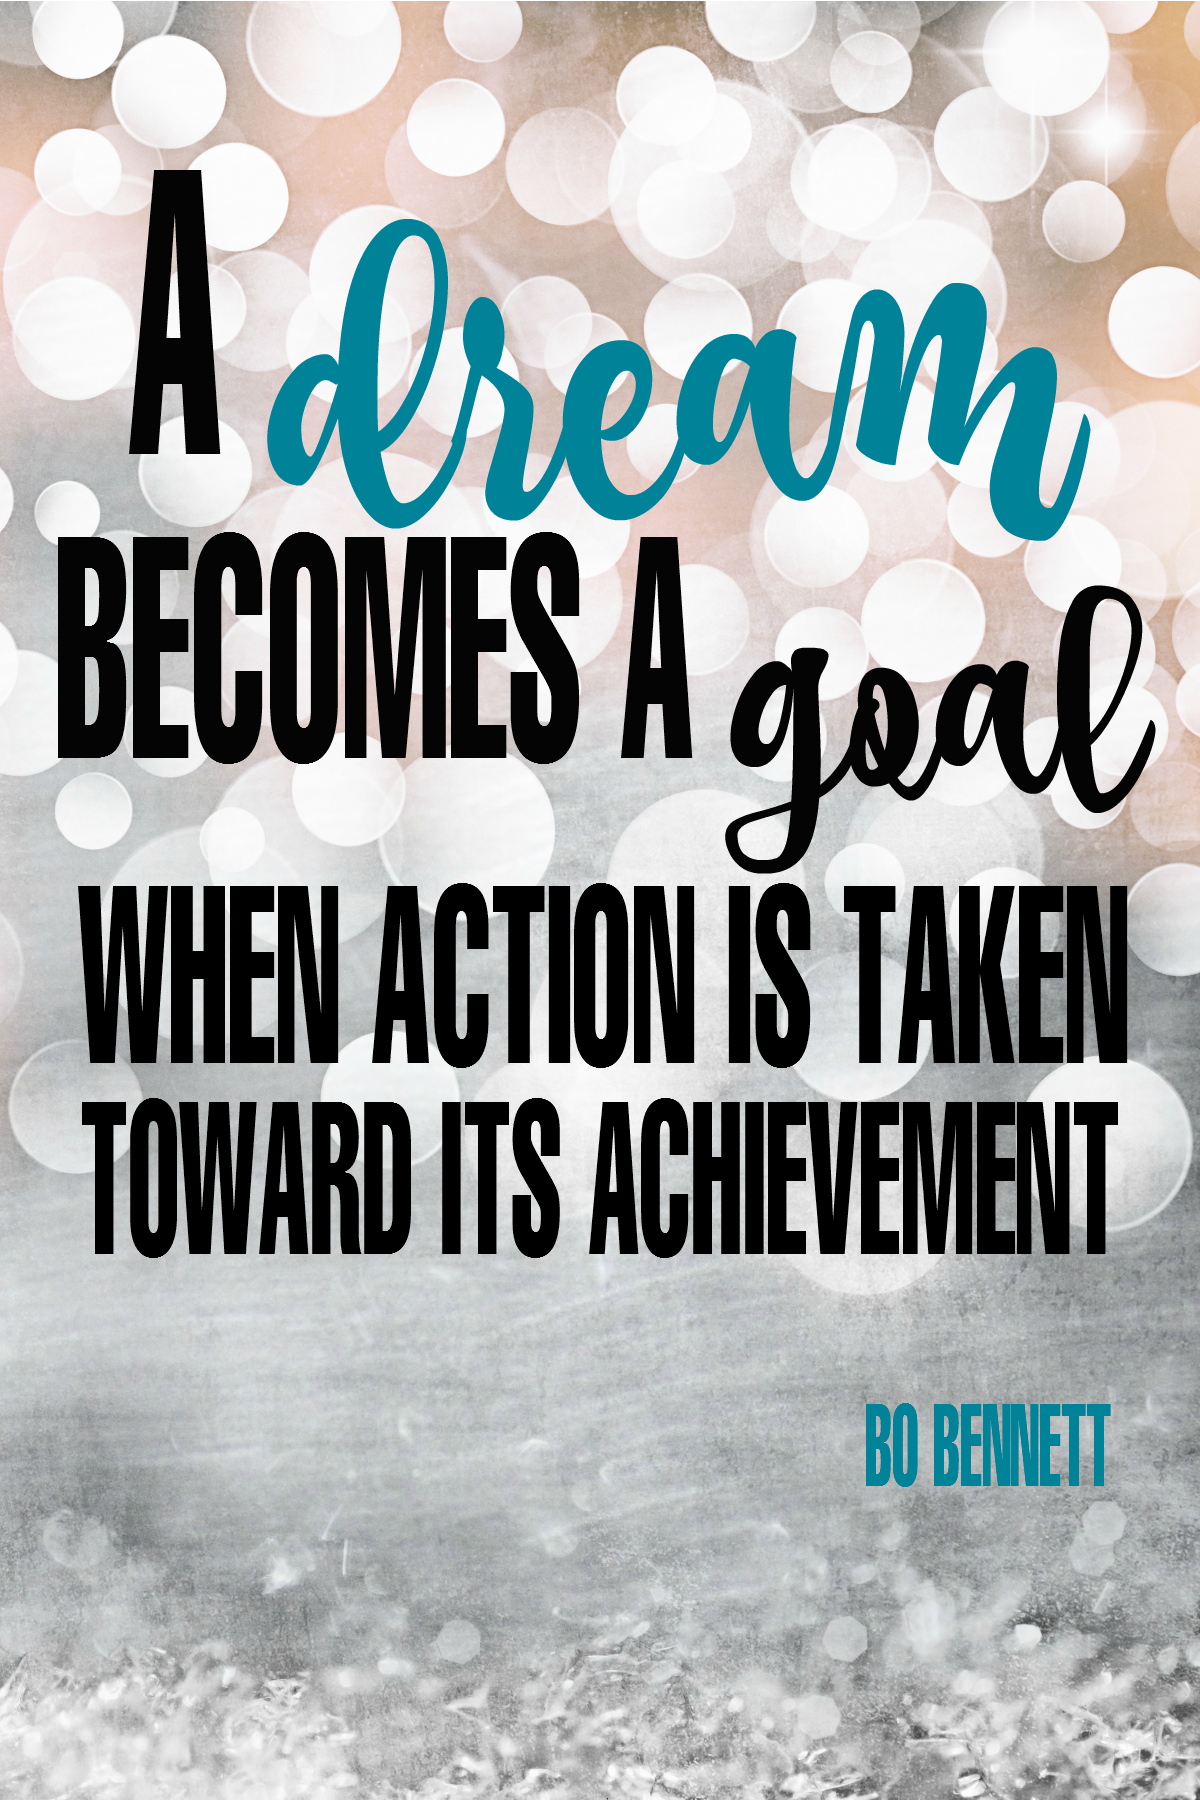 Goal Quotes 17 Inspiring Quotes About Goals  Goal Personal Development And .